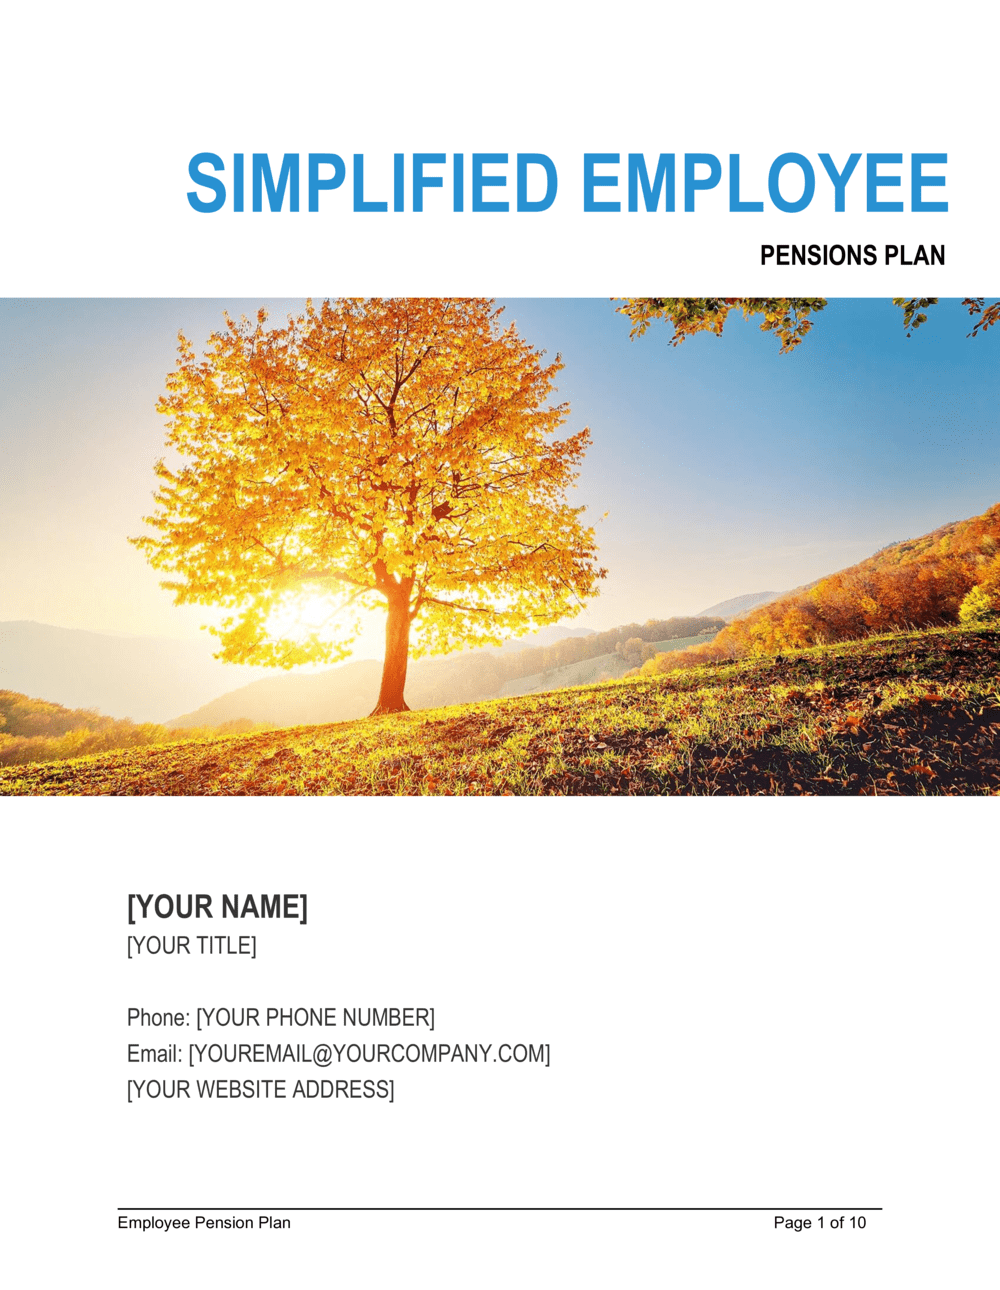 Business-in-a-Box's Simplified Employee Pensions Plan Template